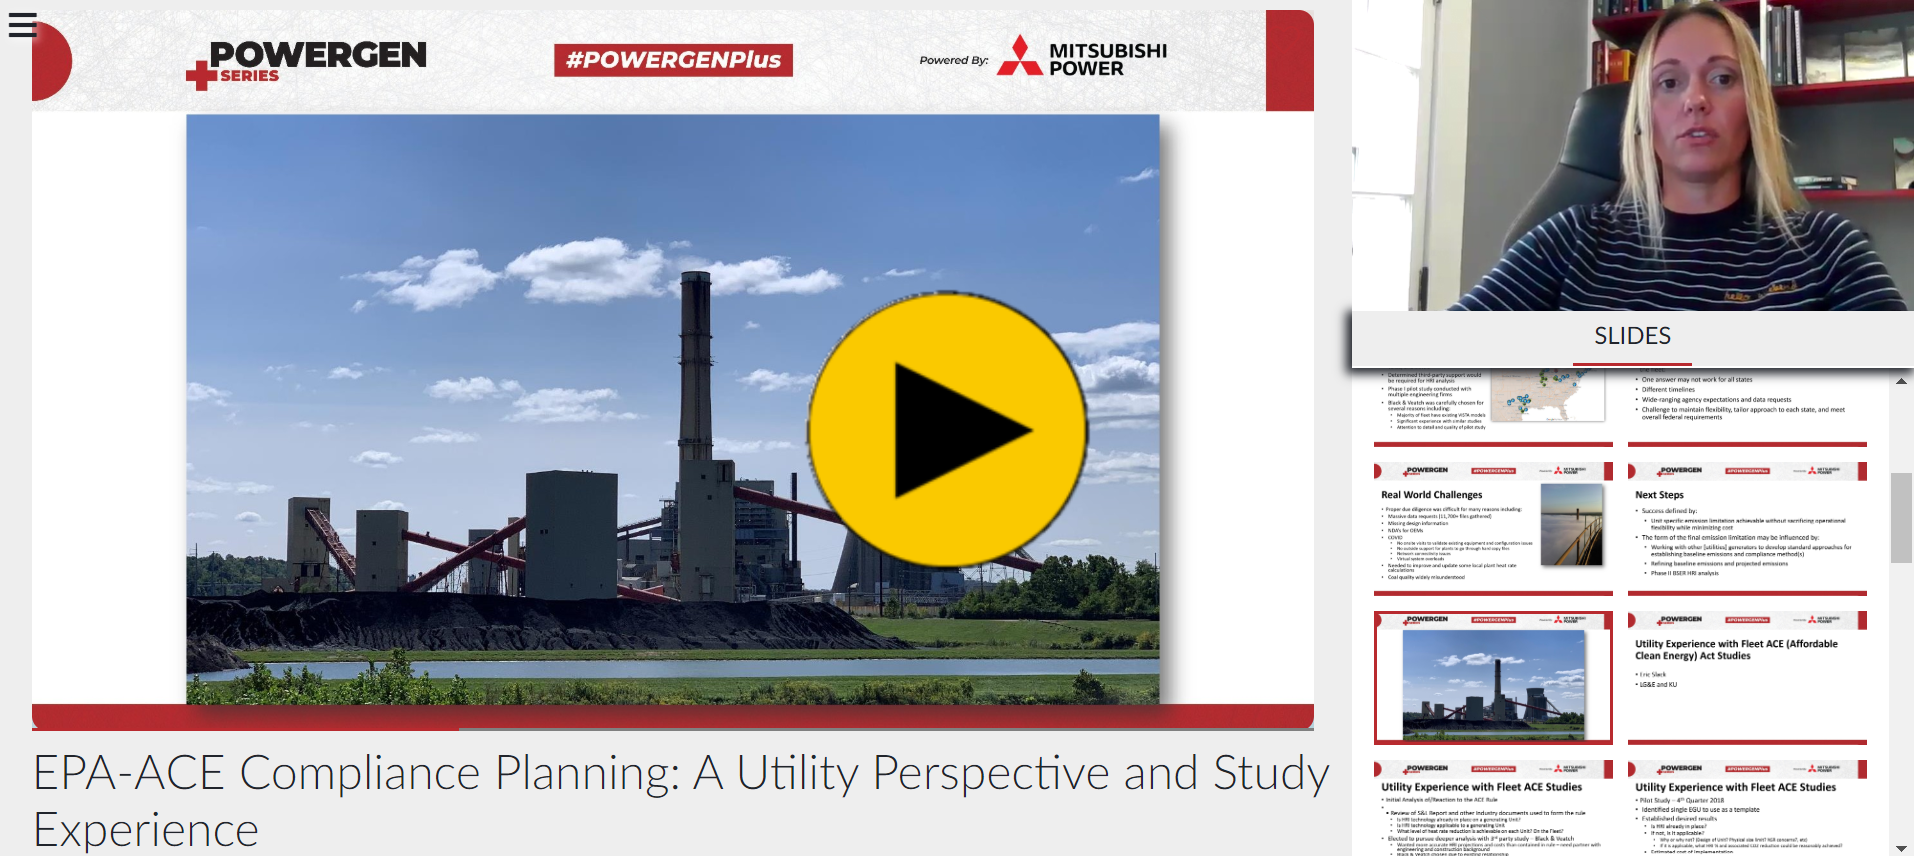 POWERGEN+ - EPA-ACE Compliance Planning: A Utility Perspective and Study Experience